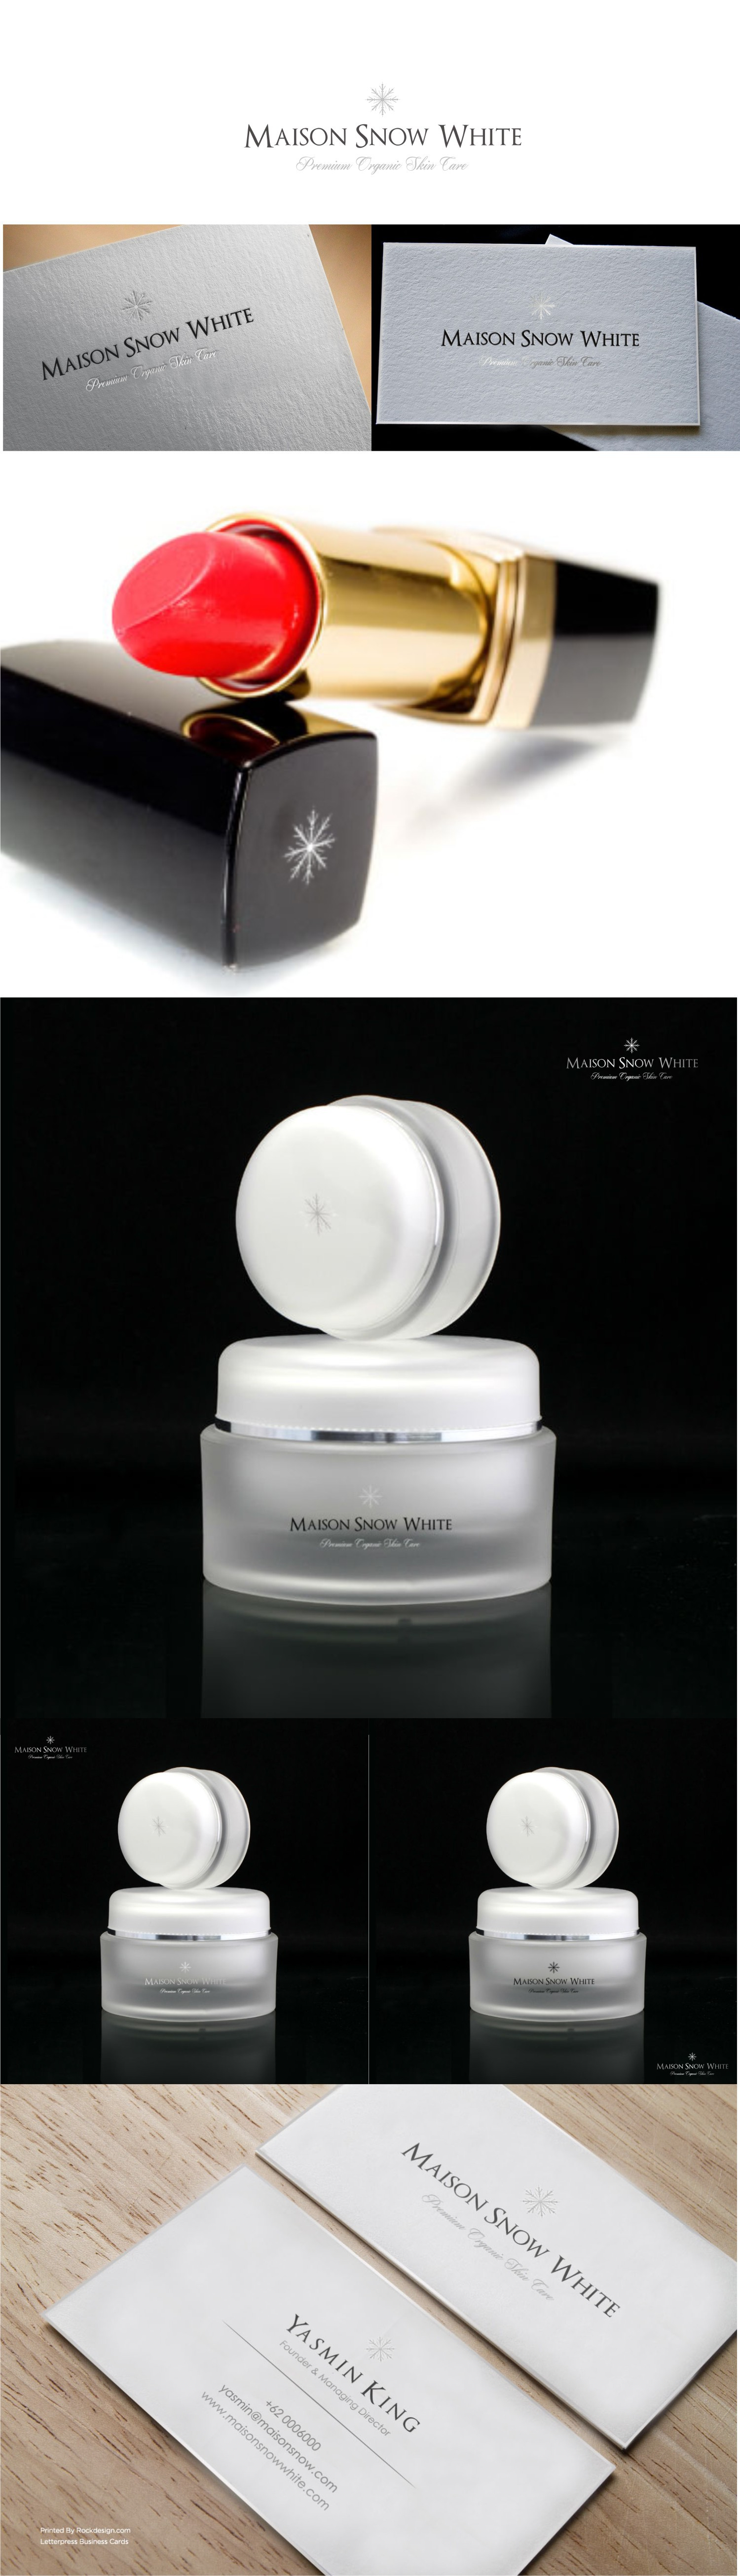 Organic luxury has a name: Maison Snow White. Create a logo for the premium cosmetic brand.